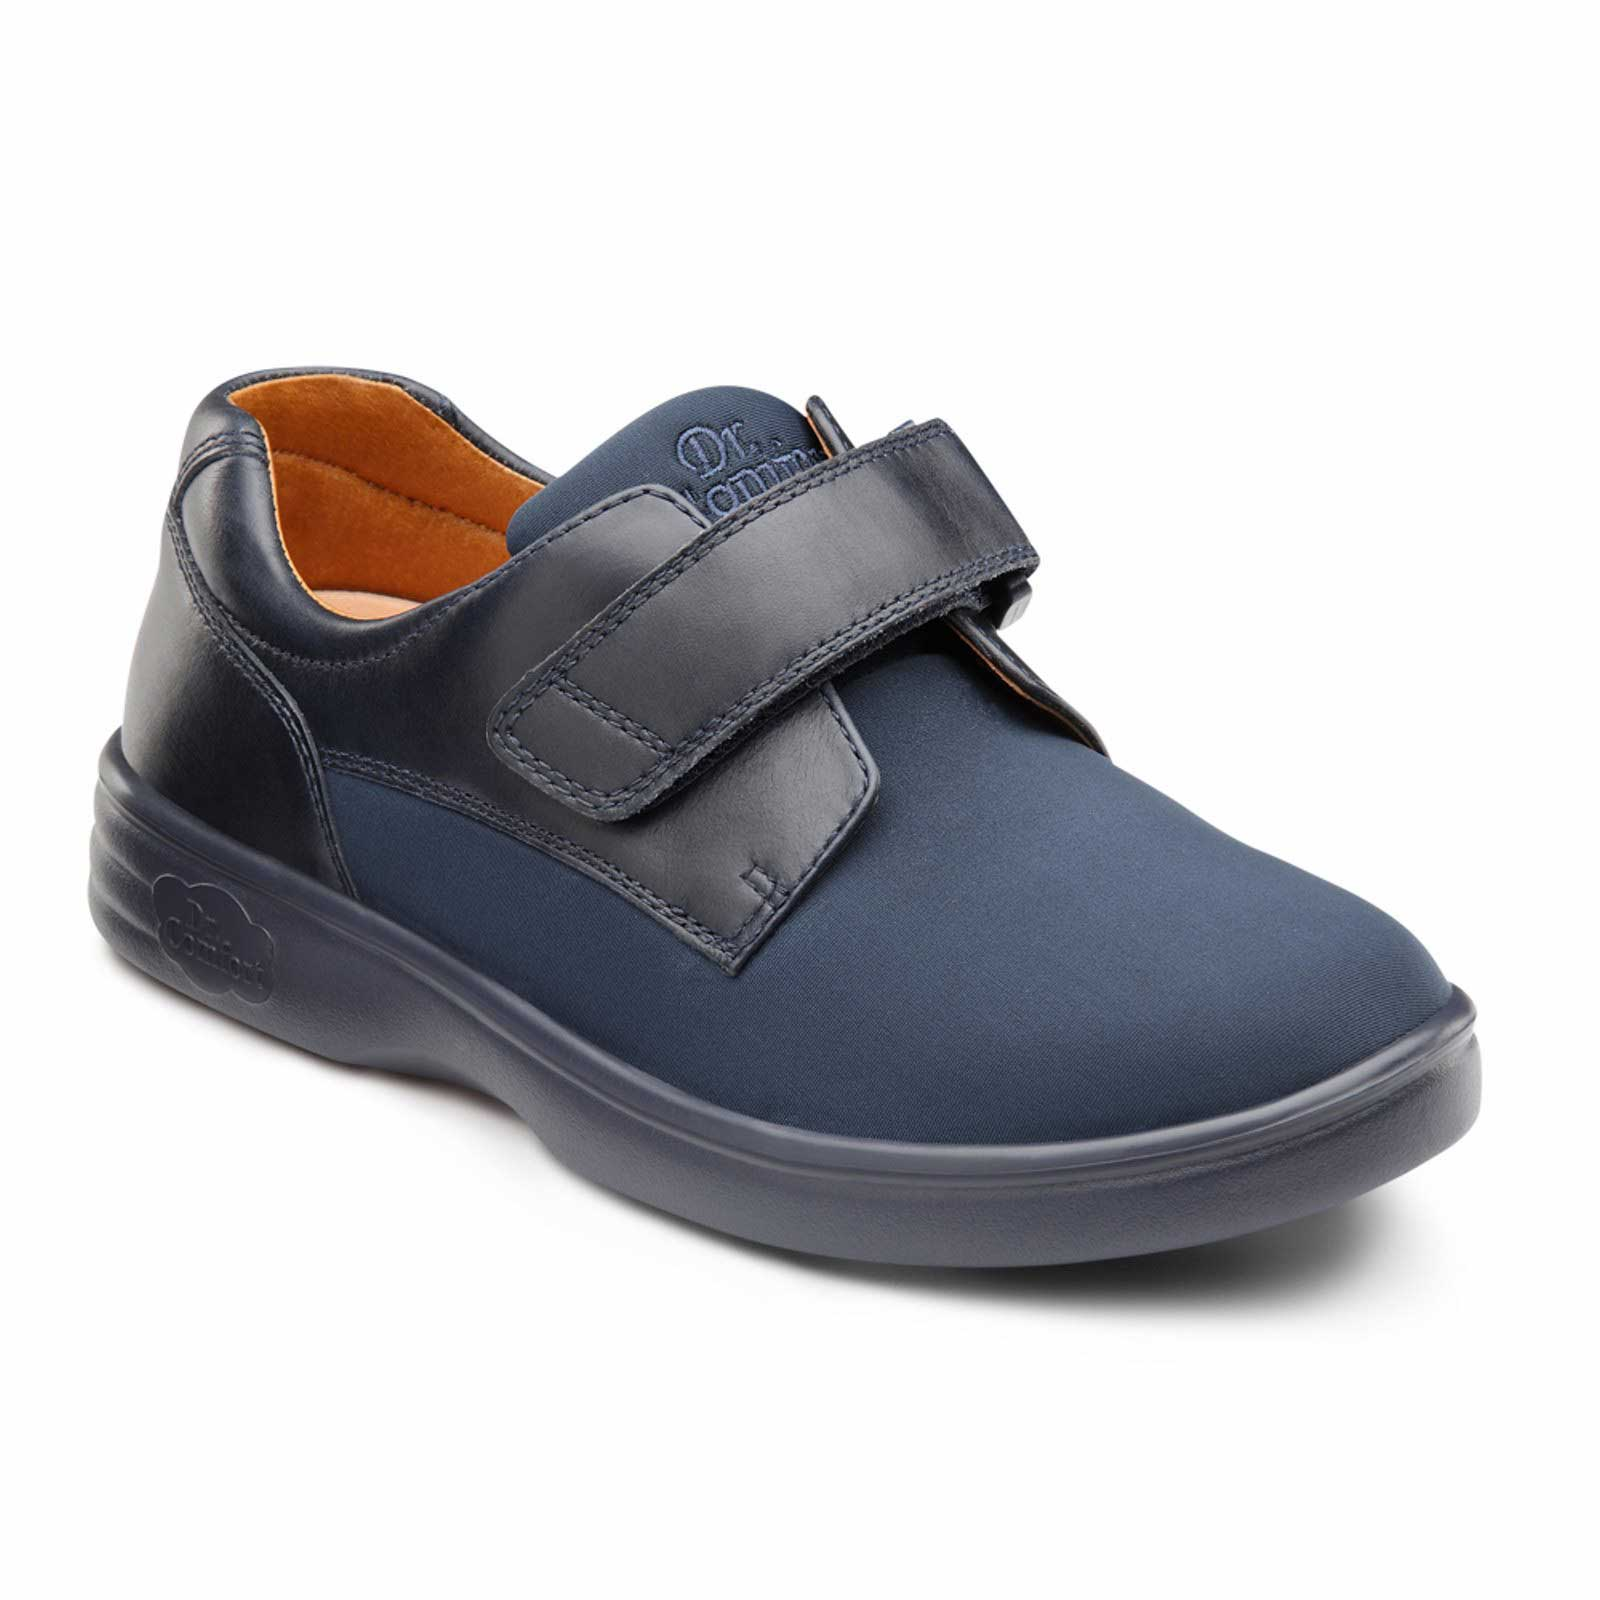 The Annie Shoe from Dr. Comfort